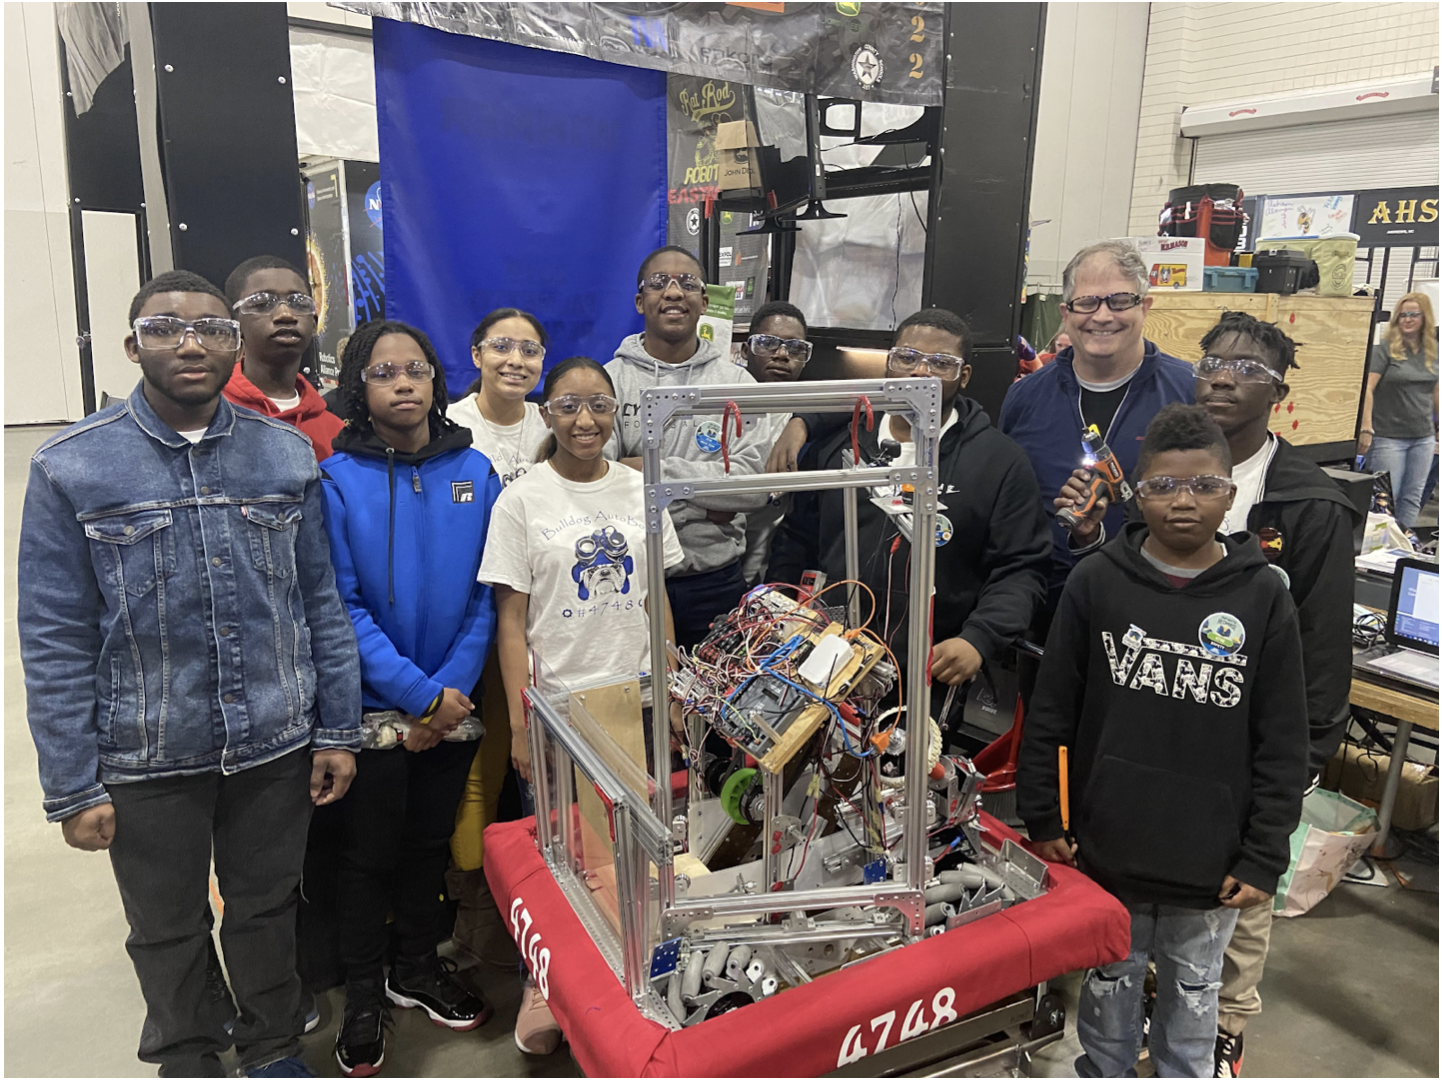 Burke Bulldog Auto Bots 4748 attend First Robotics Competition in Myrtle Beach